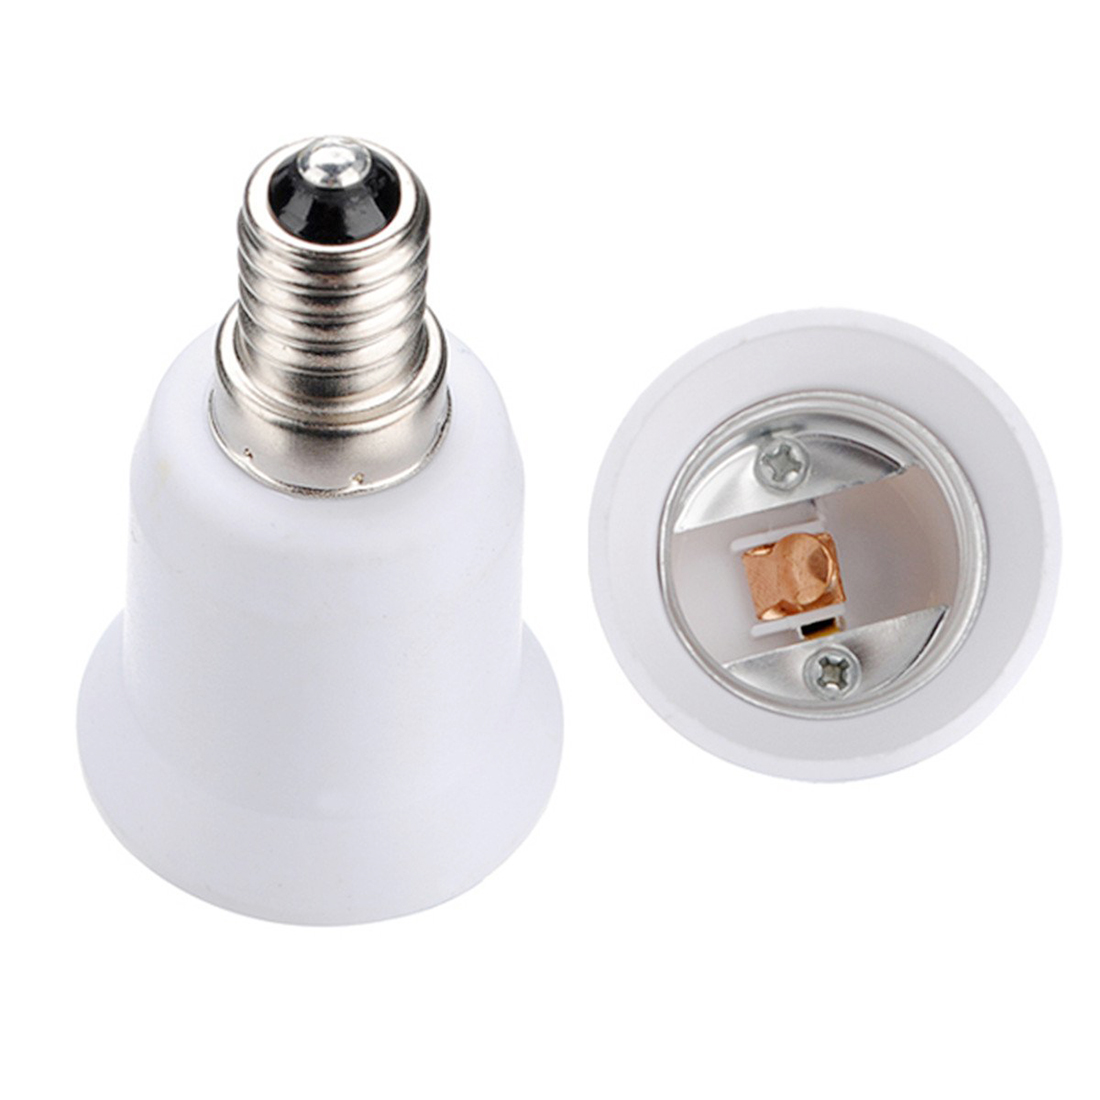 E14 E27 Adapter 4 Pcs Socket Adapter E14 To E27 Bulb Lamp Adapter